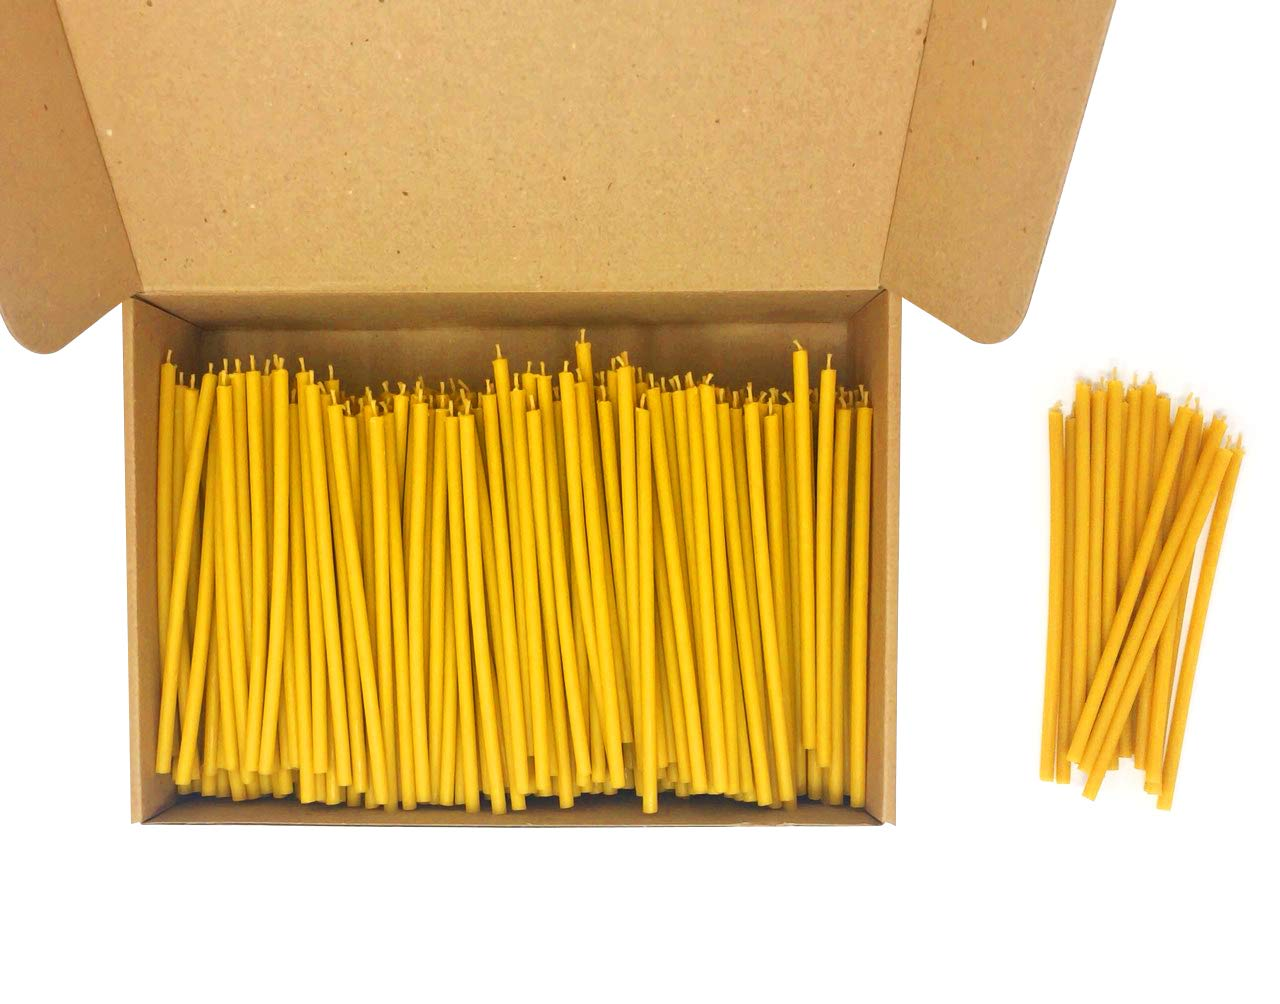 500 Votprof 100% Pure Beeswax Taper Candles ( 6 1/4'') Natural Honey Scent by Votprof